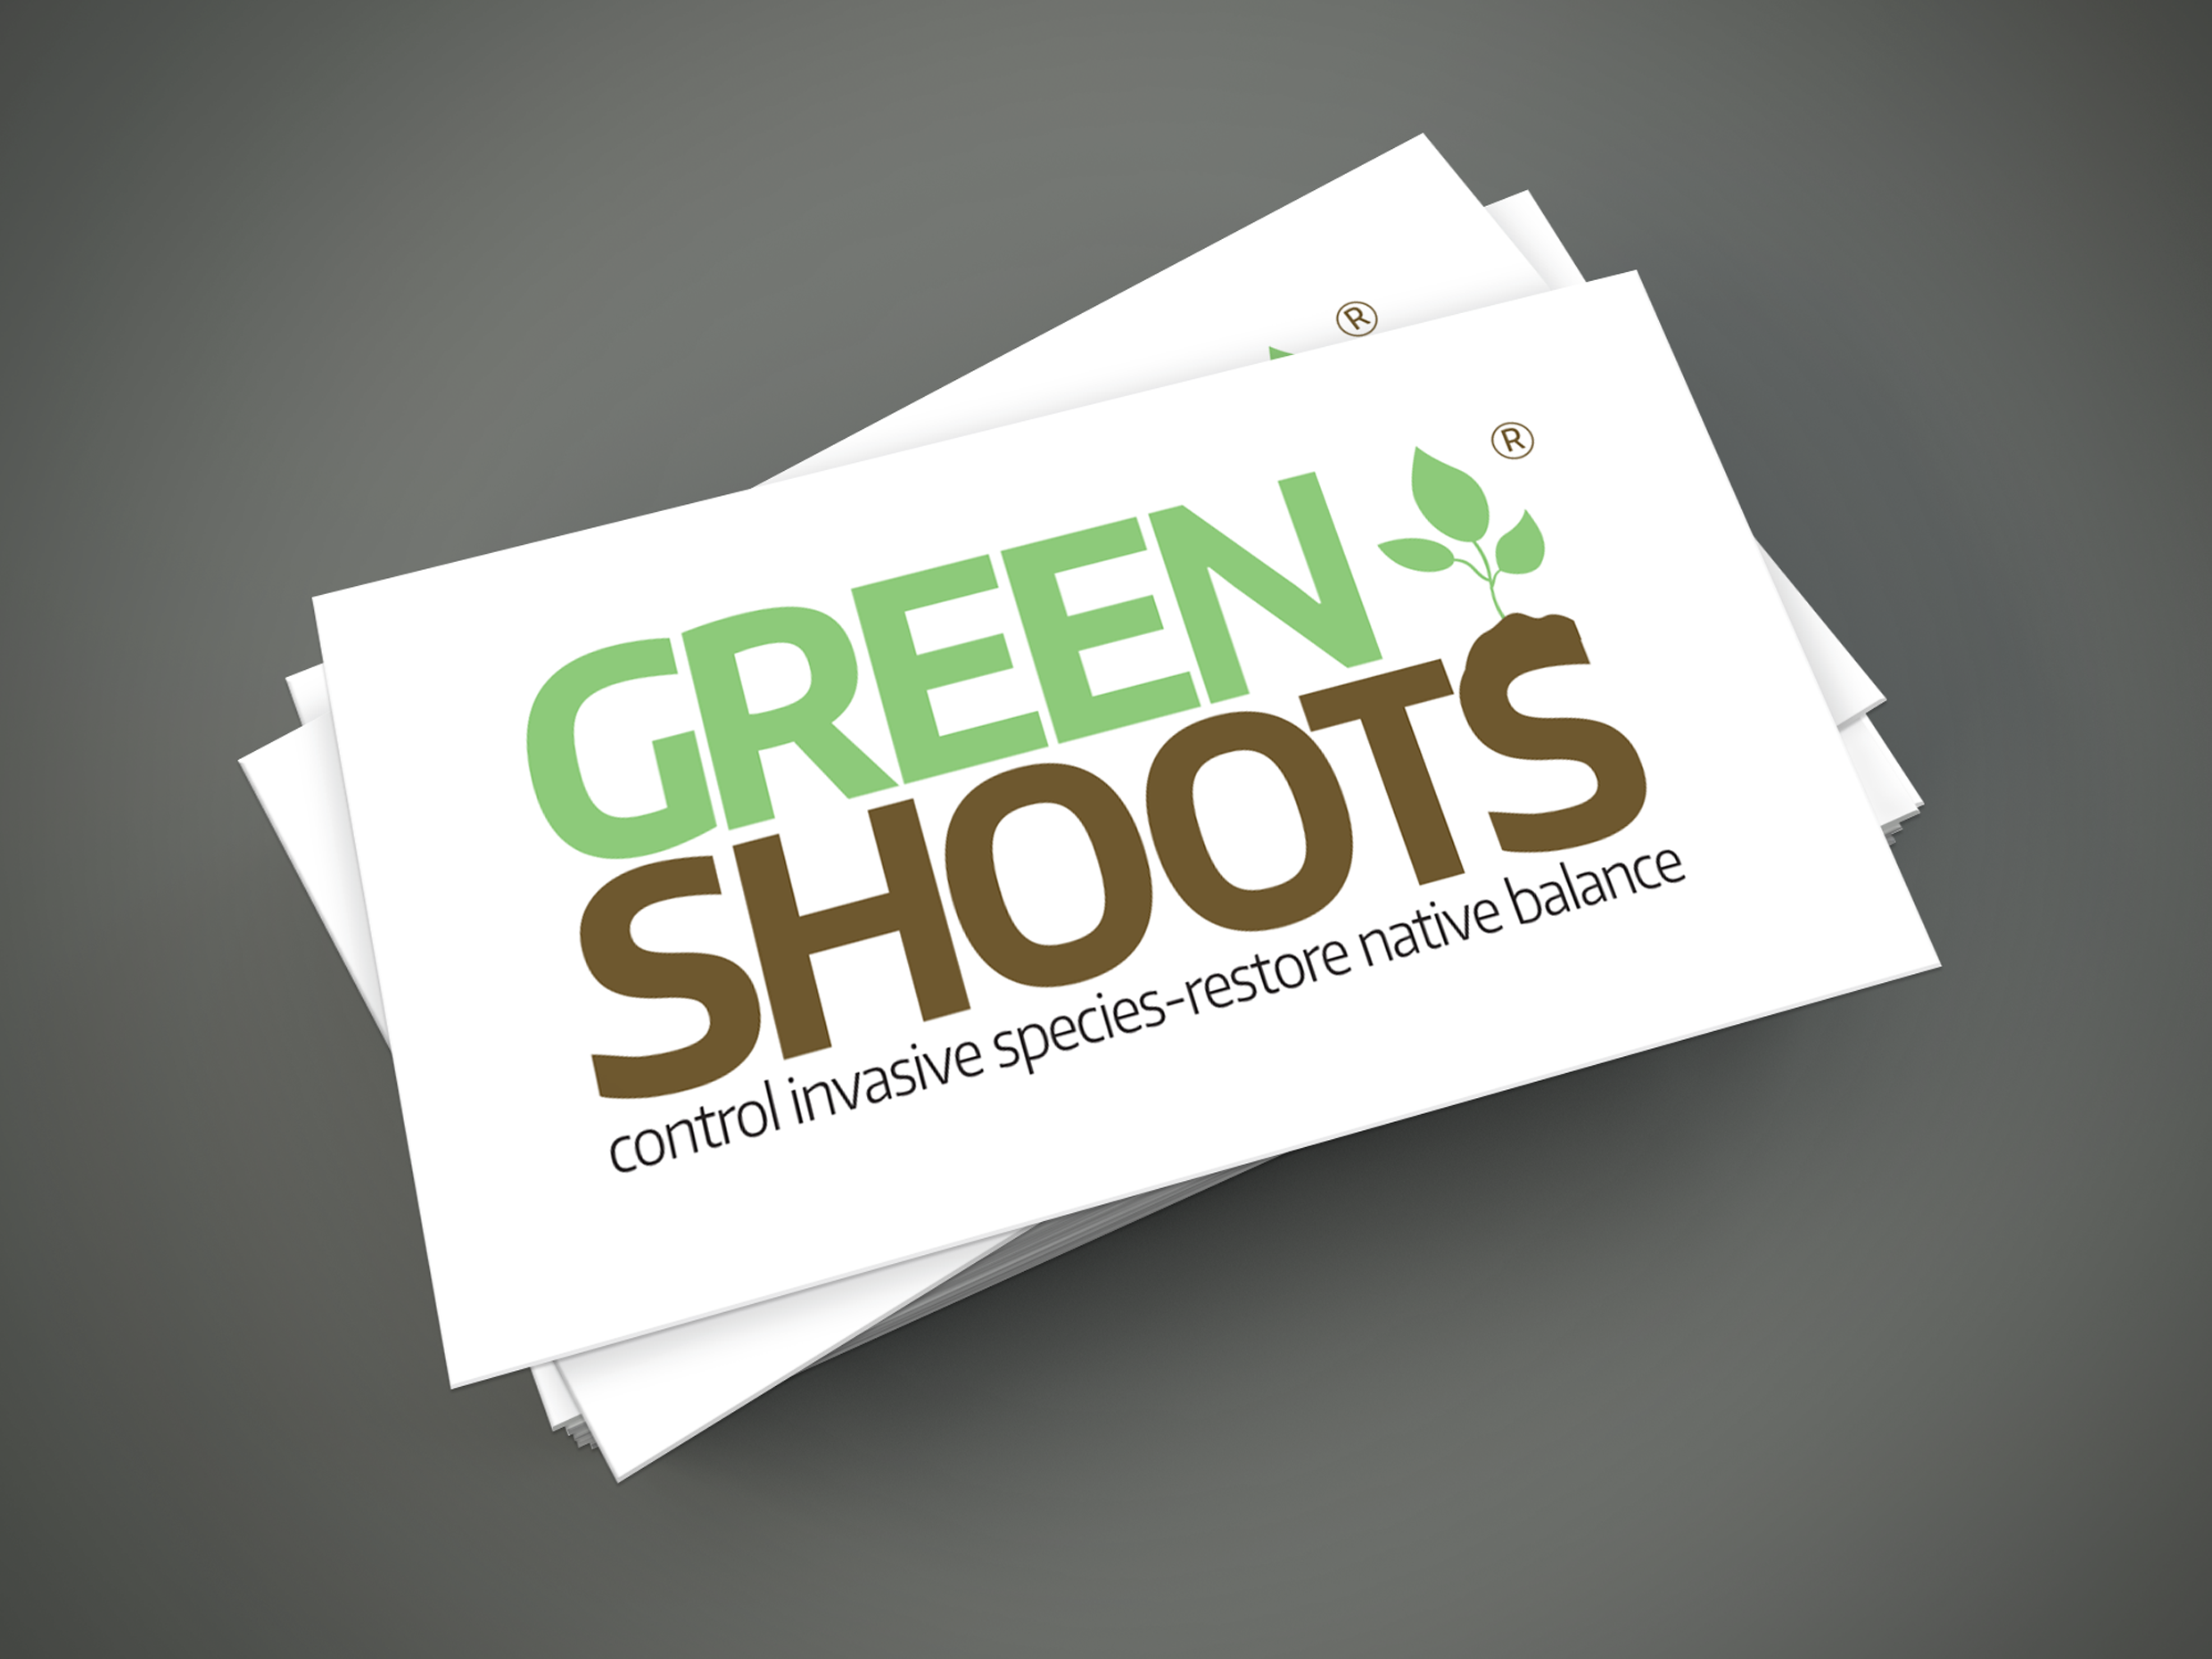 Green Shoots   Green Shoots offers products to control invasive plants. Their products offer precise control to target the invasive plants while lessening the chance of harm to native plants. Green Shoots hired me to do several projects as well as a complete rebrand of the company's logo. I used a combination of Illustrator, Photoshop, and InDesign to create their logo and marketing materials.